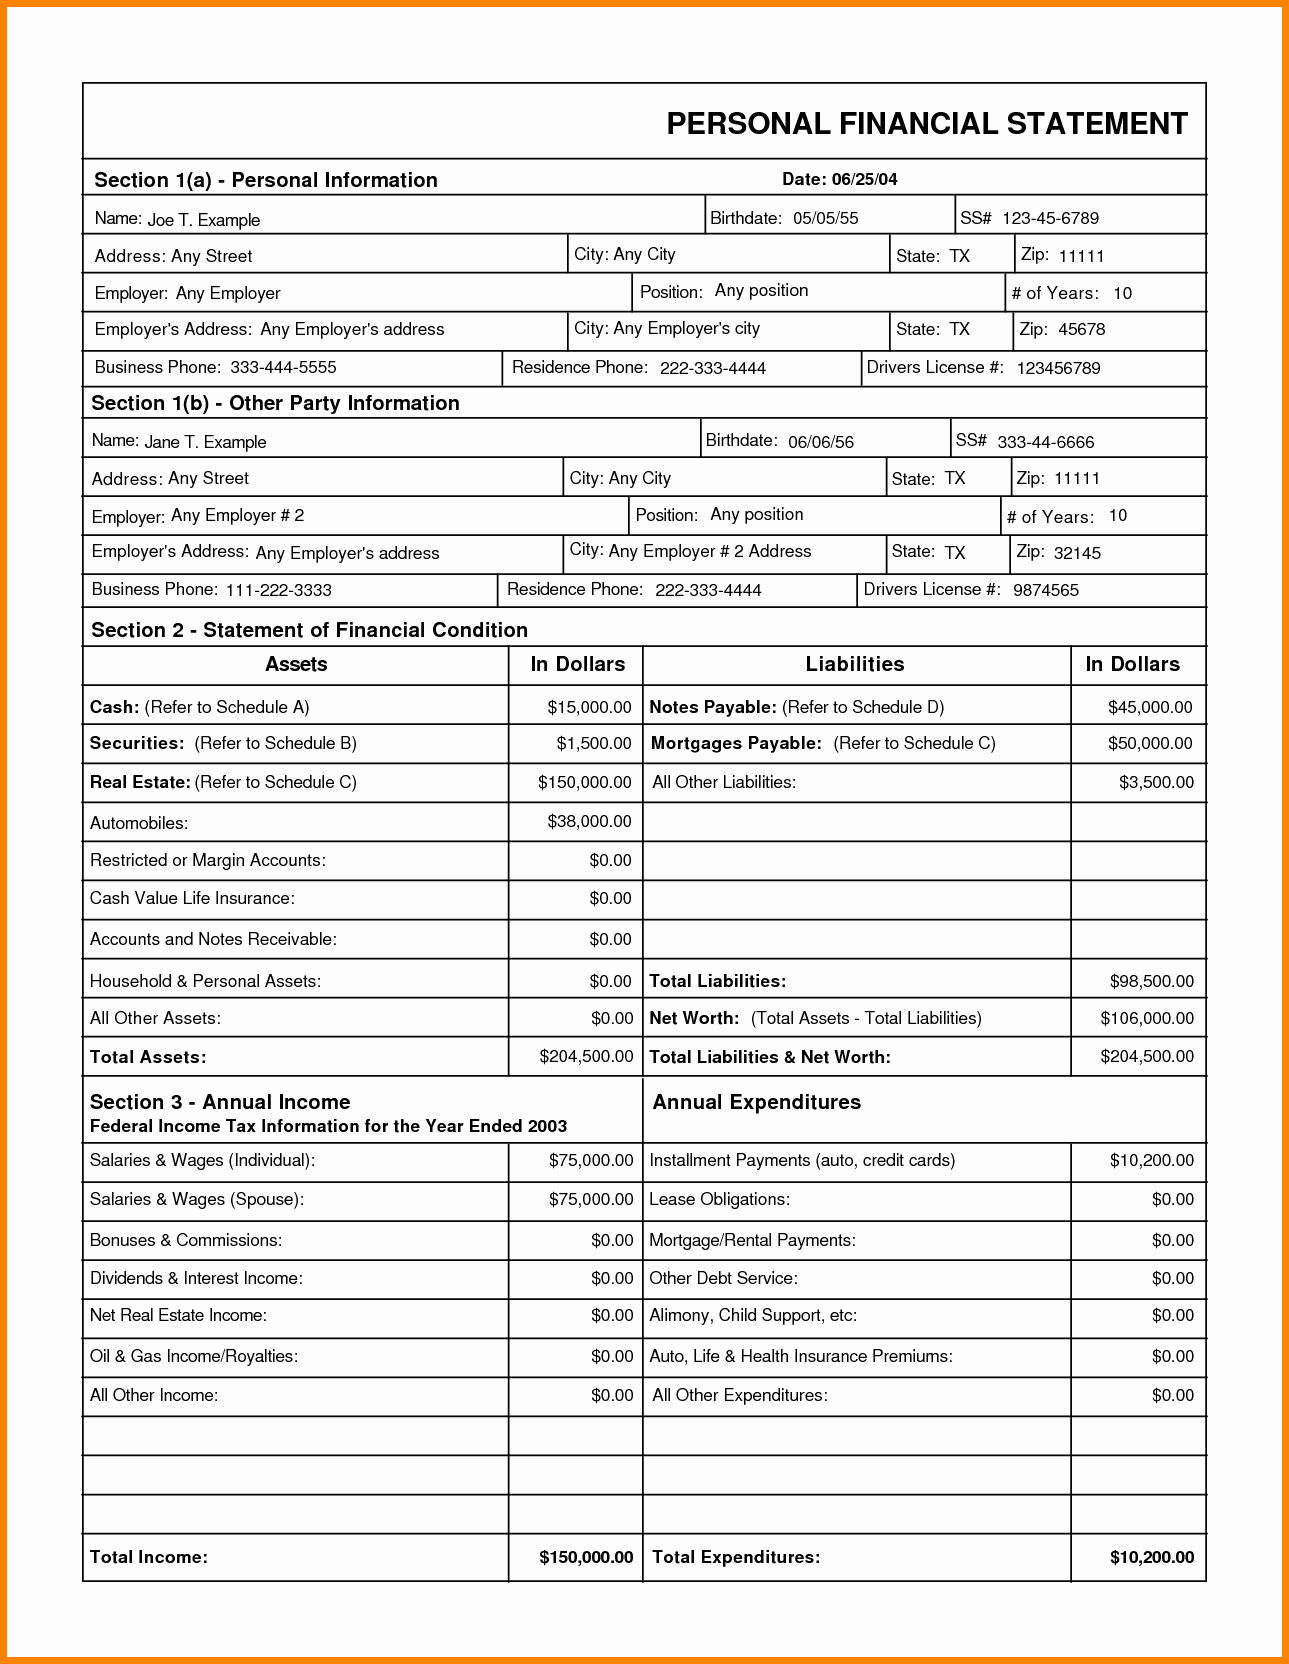 Personal Income Statement Template Awesome 6 Template for Personal Financial Statement